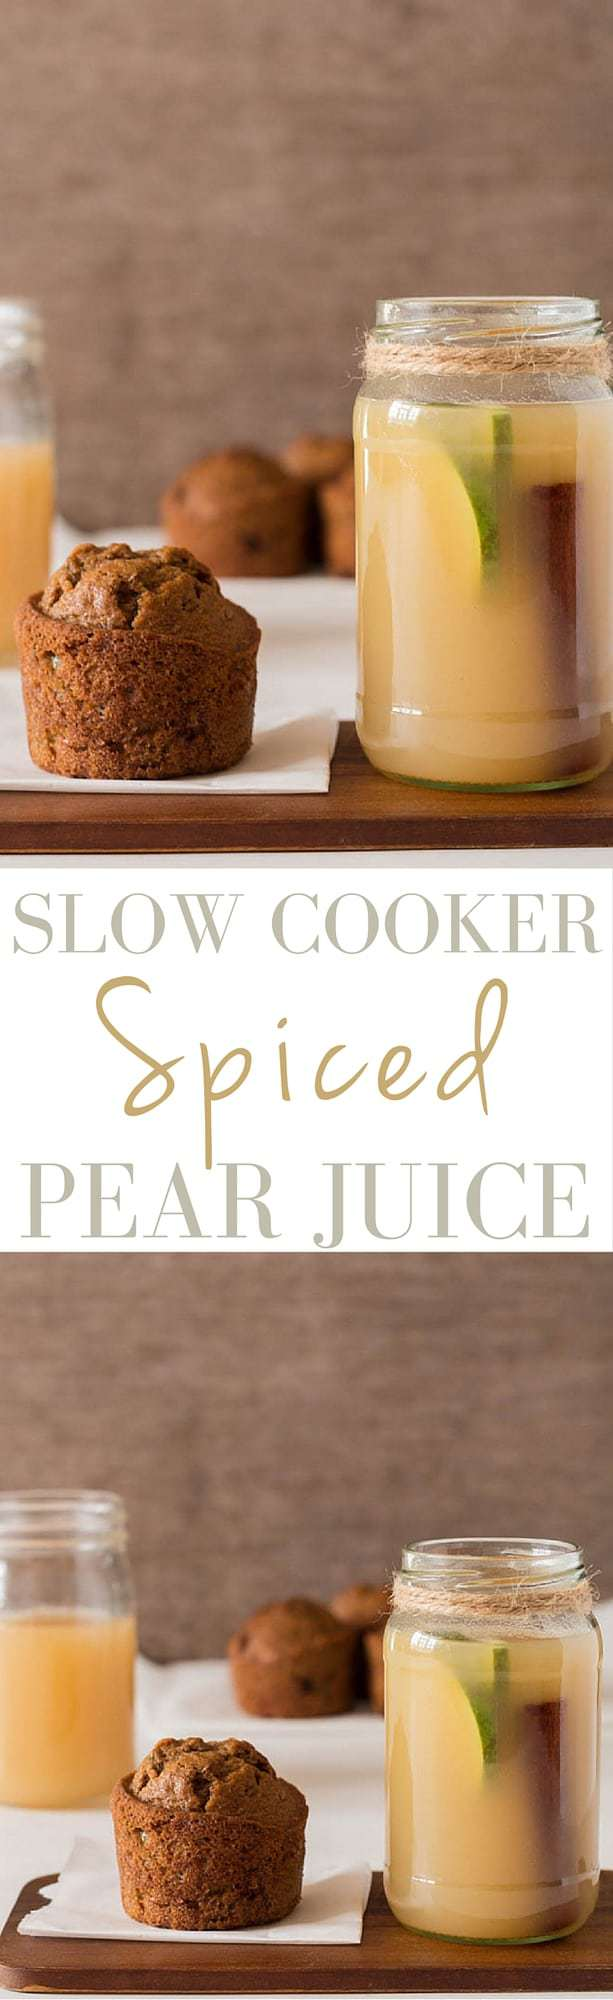 Slow Cooker Spiced Pear Juice | Recipes From A Pantry